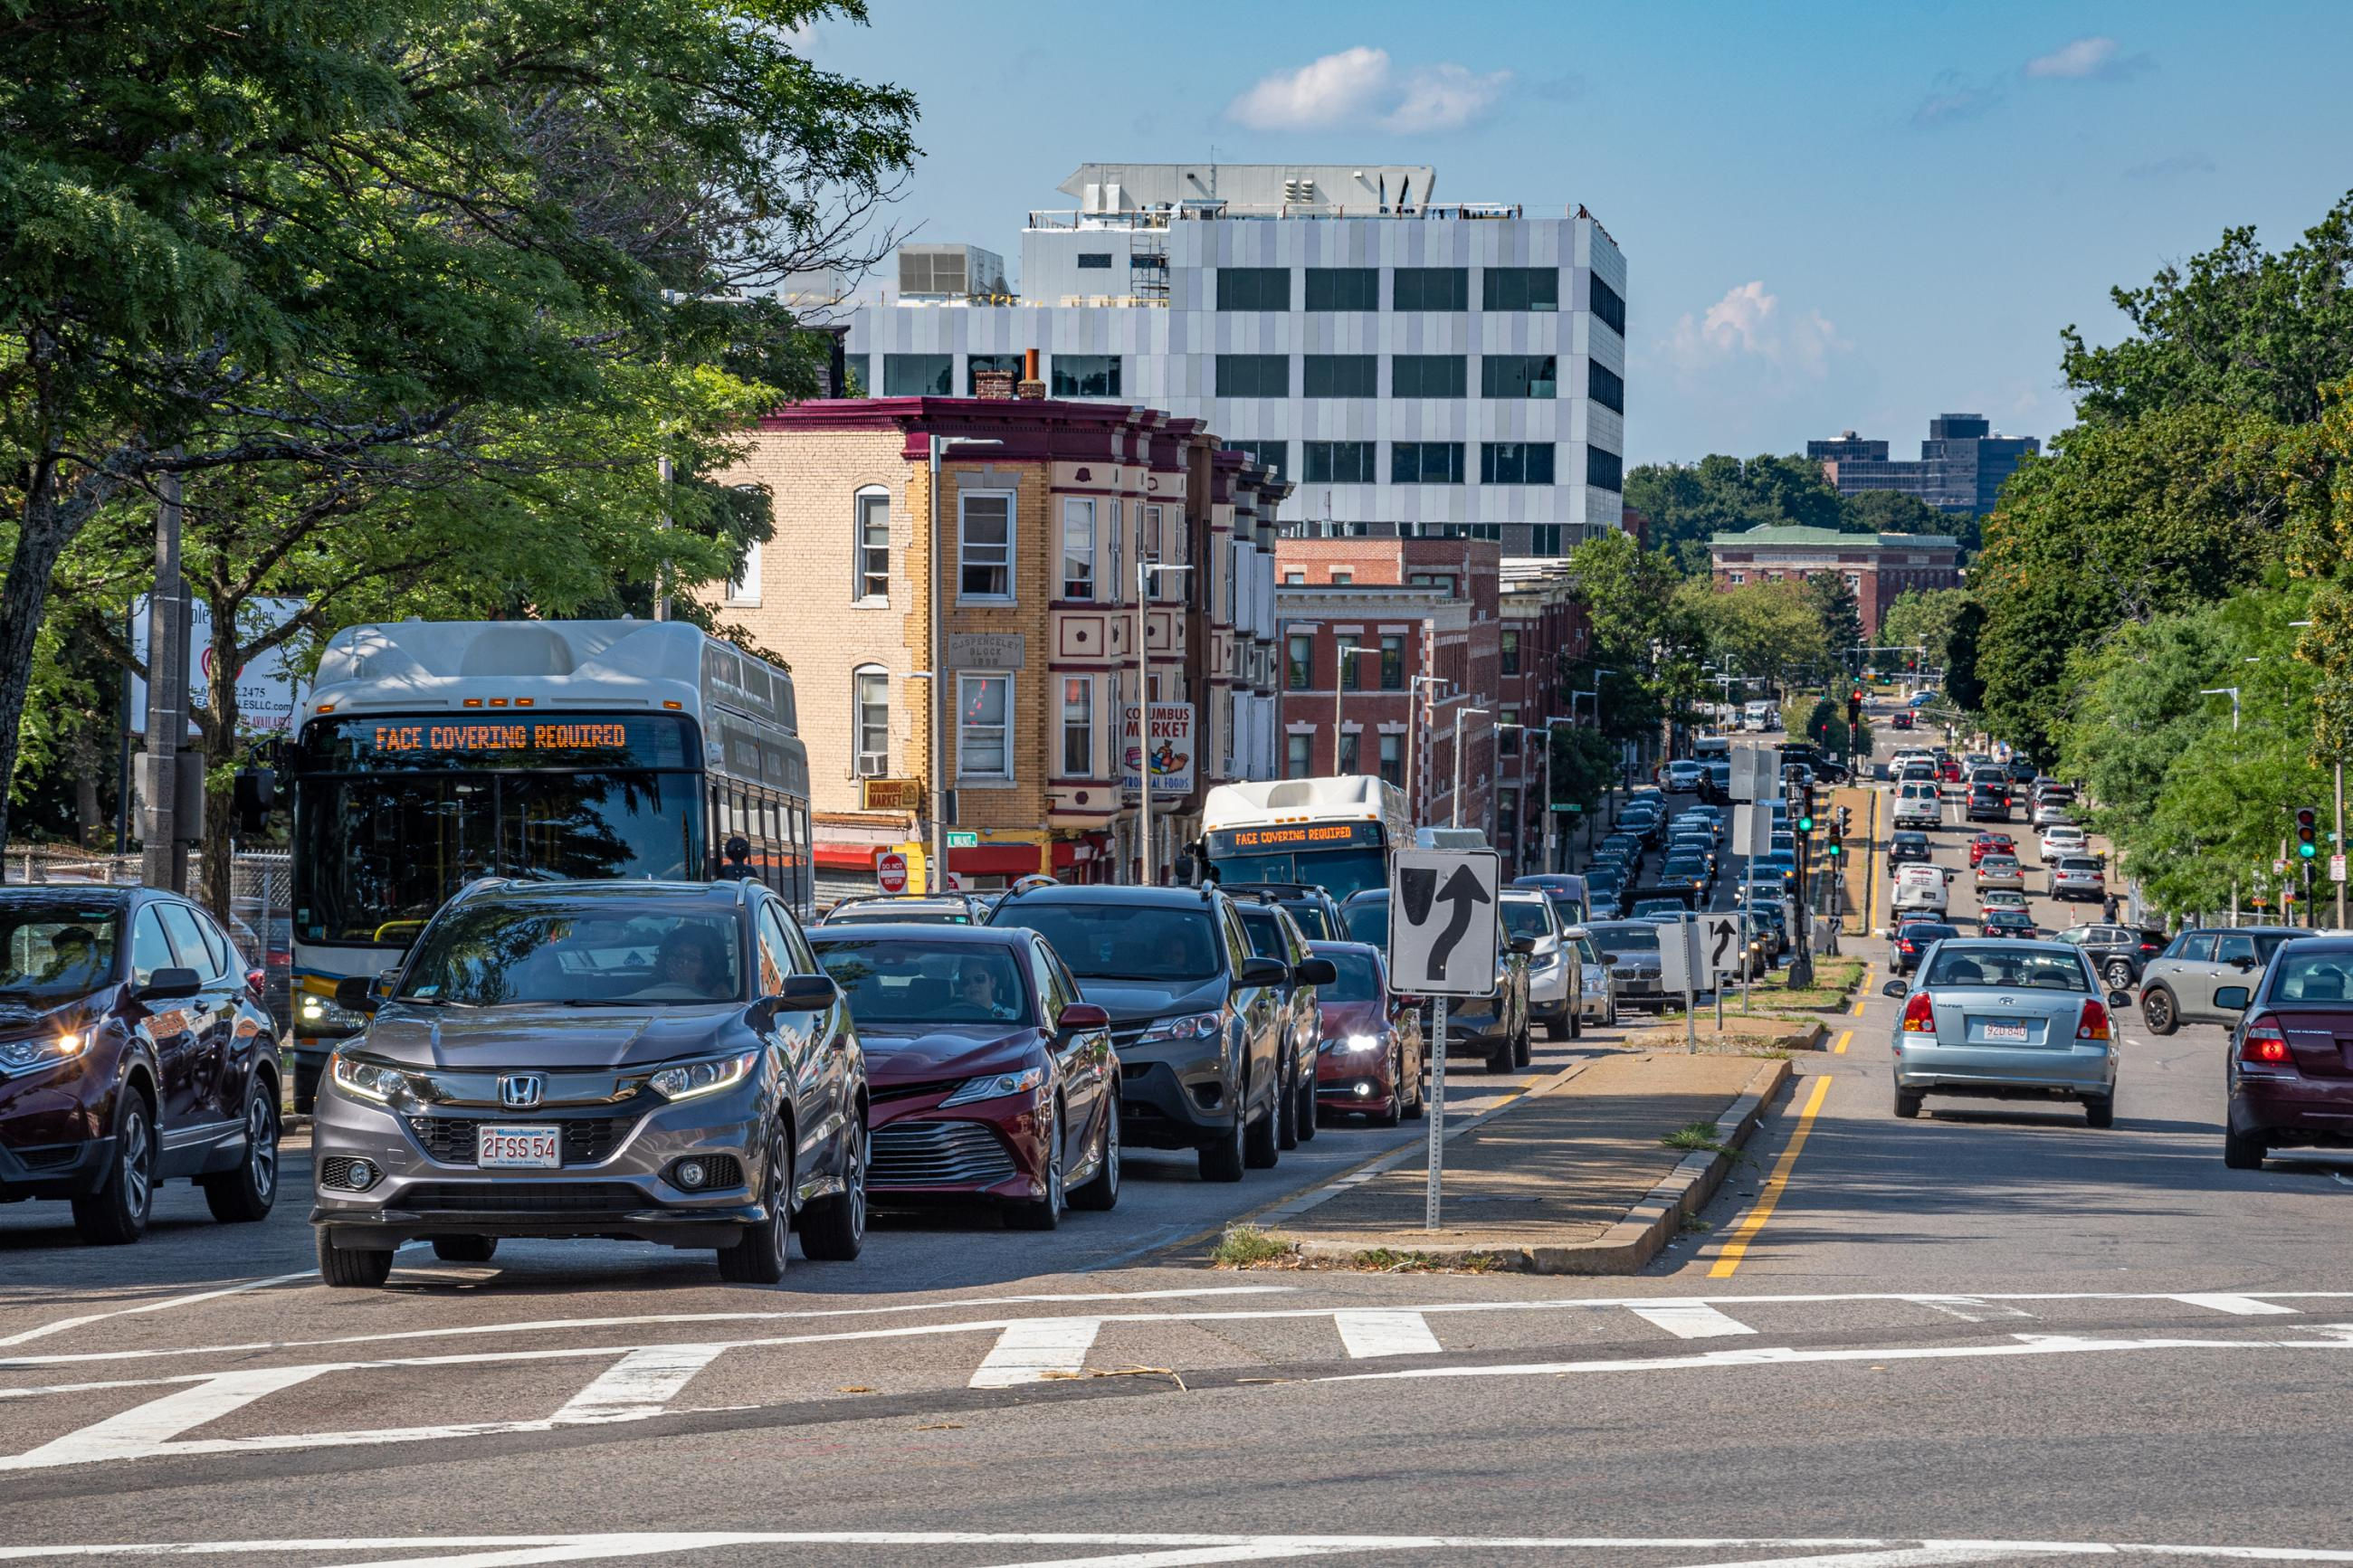 View of Columbus Avenue on a clear summer day during rush hour traffic.